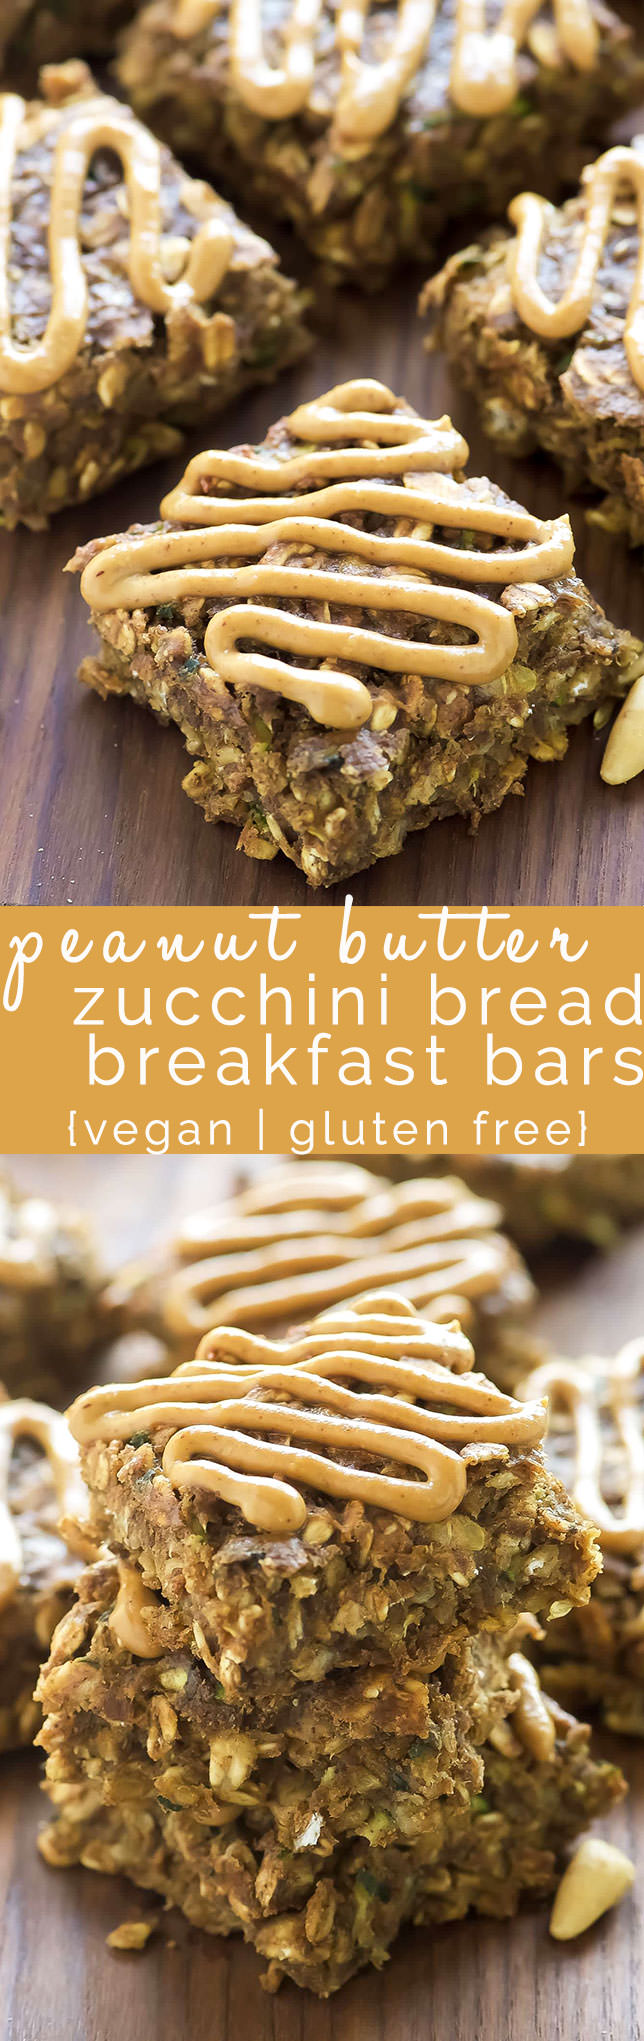 Peanut Butter Zucchini Bread Breakfast Bars are a delicious yet sneaky way to get more veggies in! With only 120 calories, they are refined sugar free, vegan and gluten free. Perfect start to your day or for a pick me up!